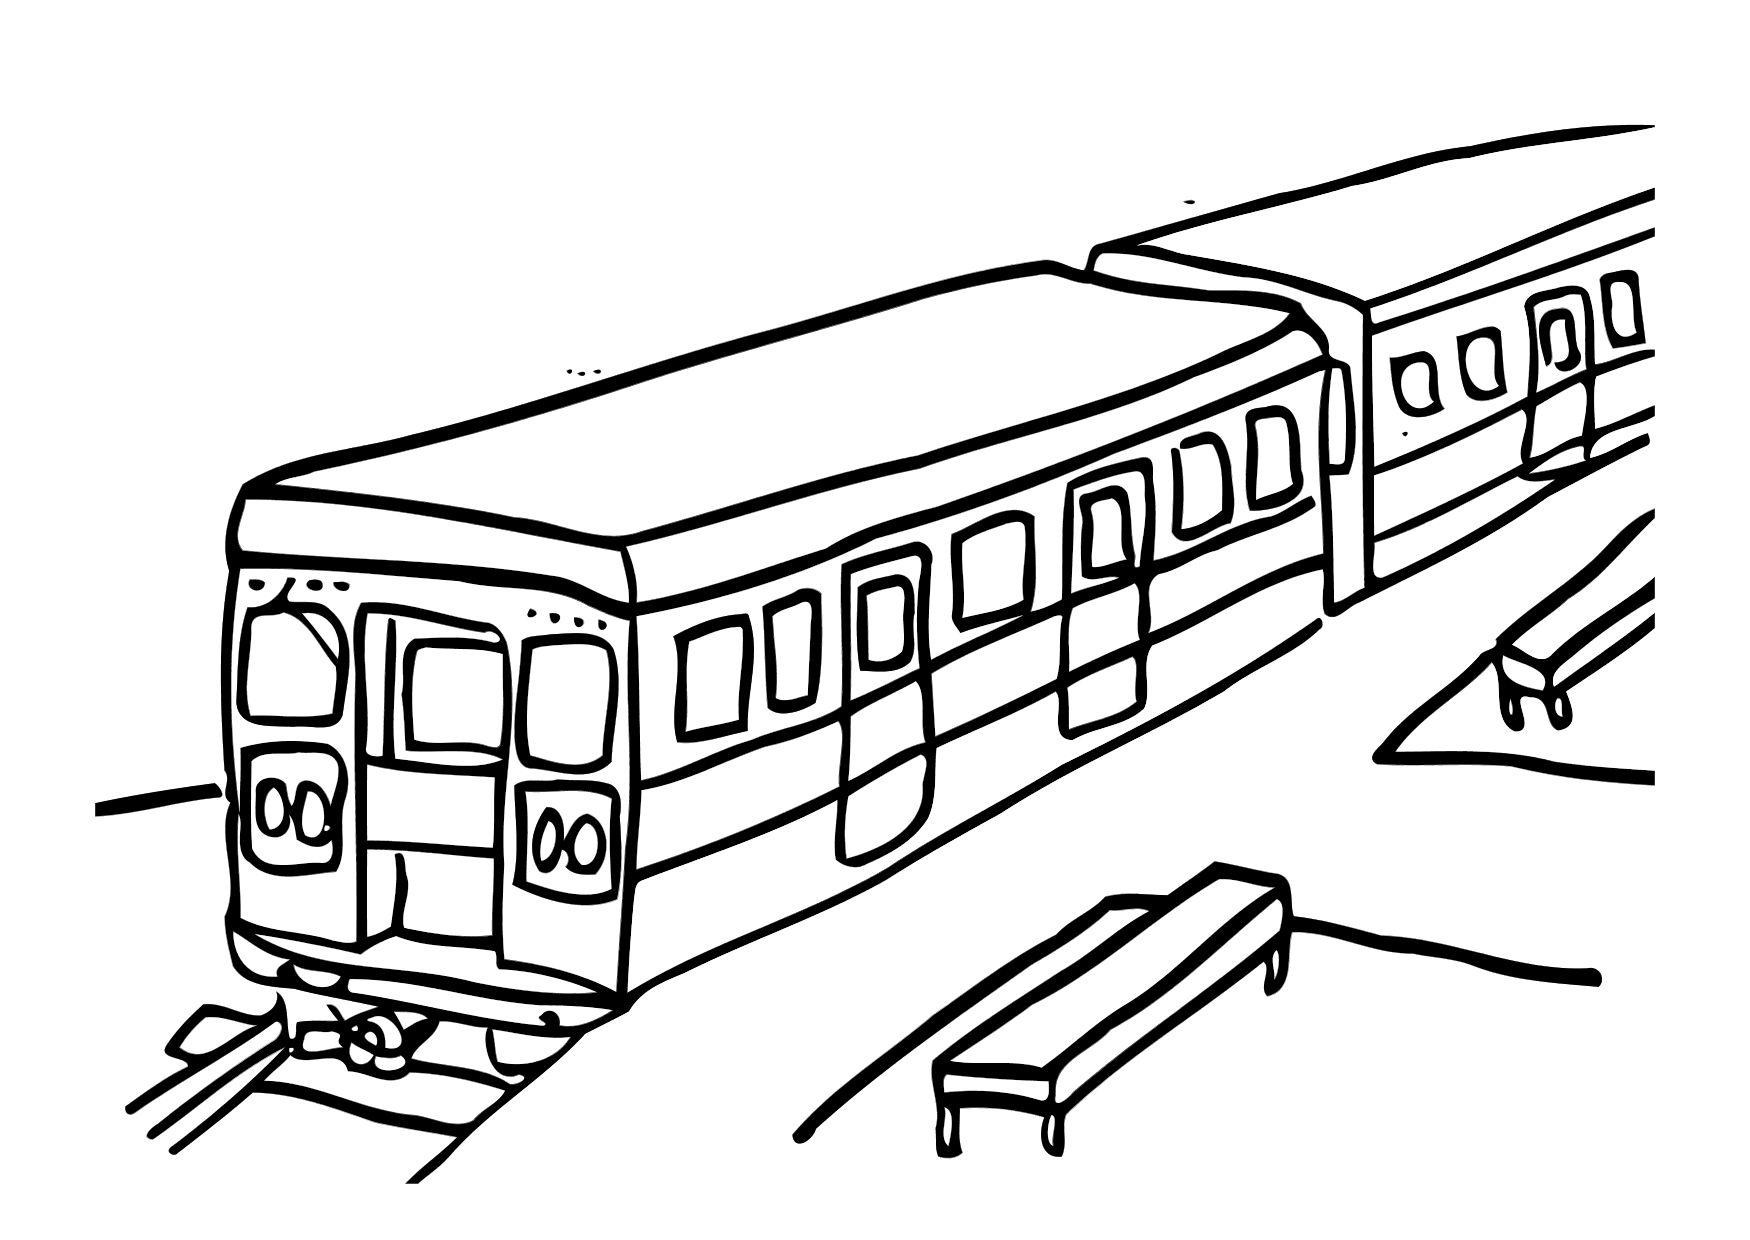 holiday coloring pages polar express train coloring pages dibujo para colorear tren img 12303 - Polar Express Train Coloring Page